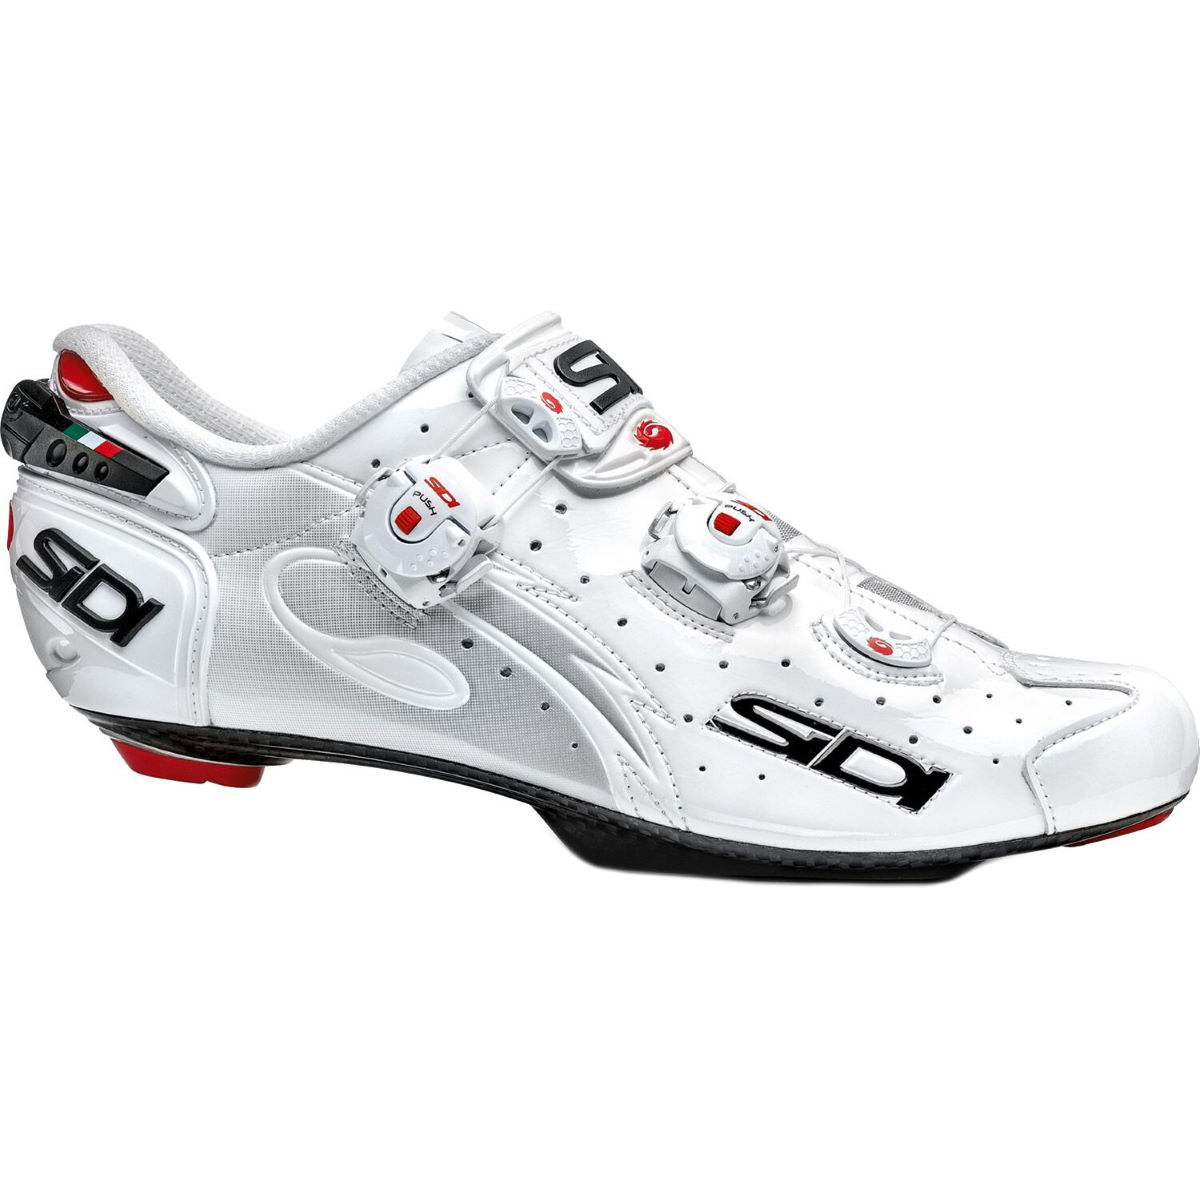 Sidi Wire Carbon SP Road Shoe (Speedplay) - 39 White/White